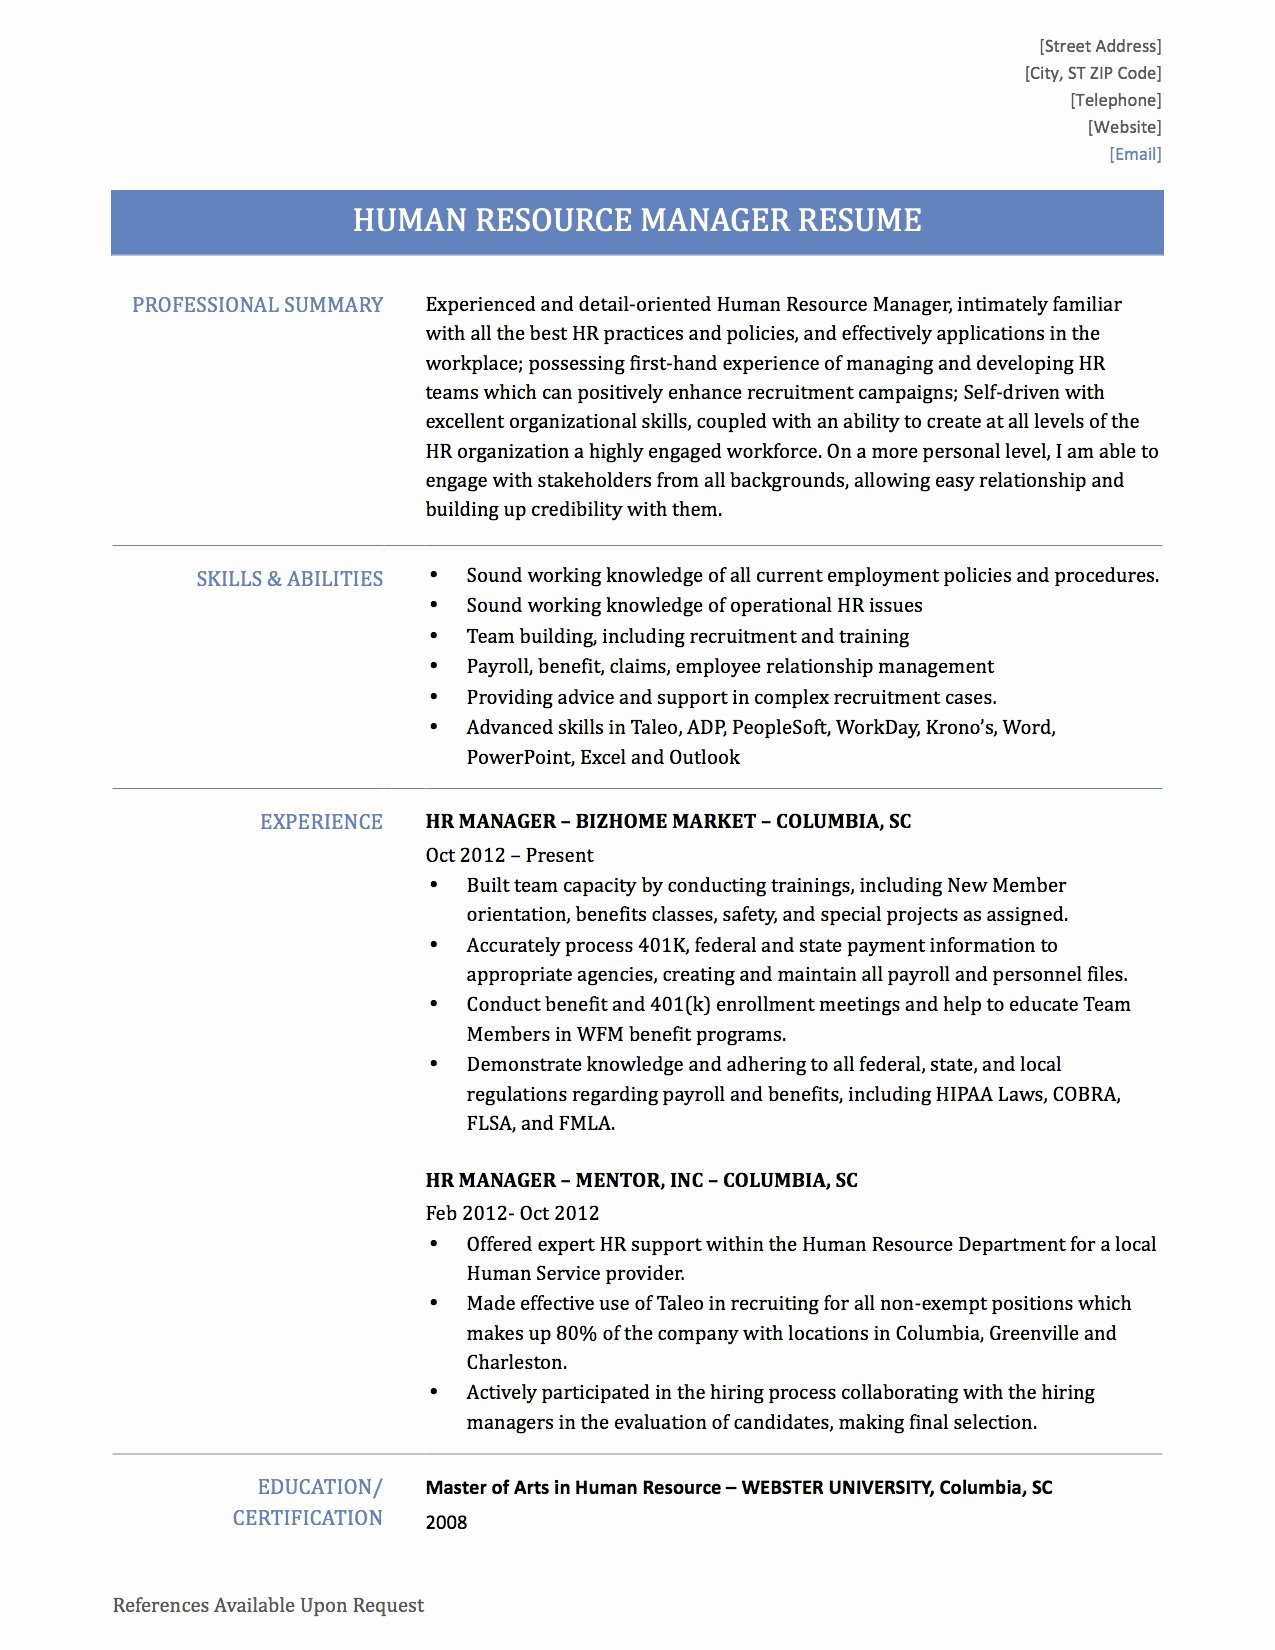 professional resume human resources manager